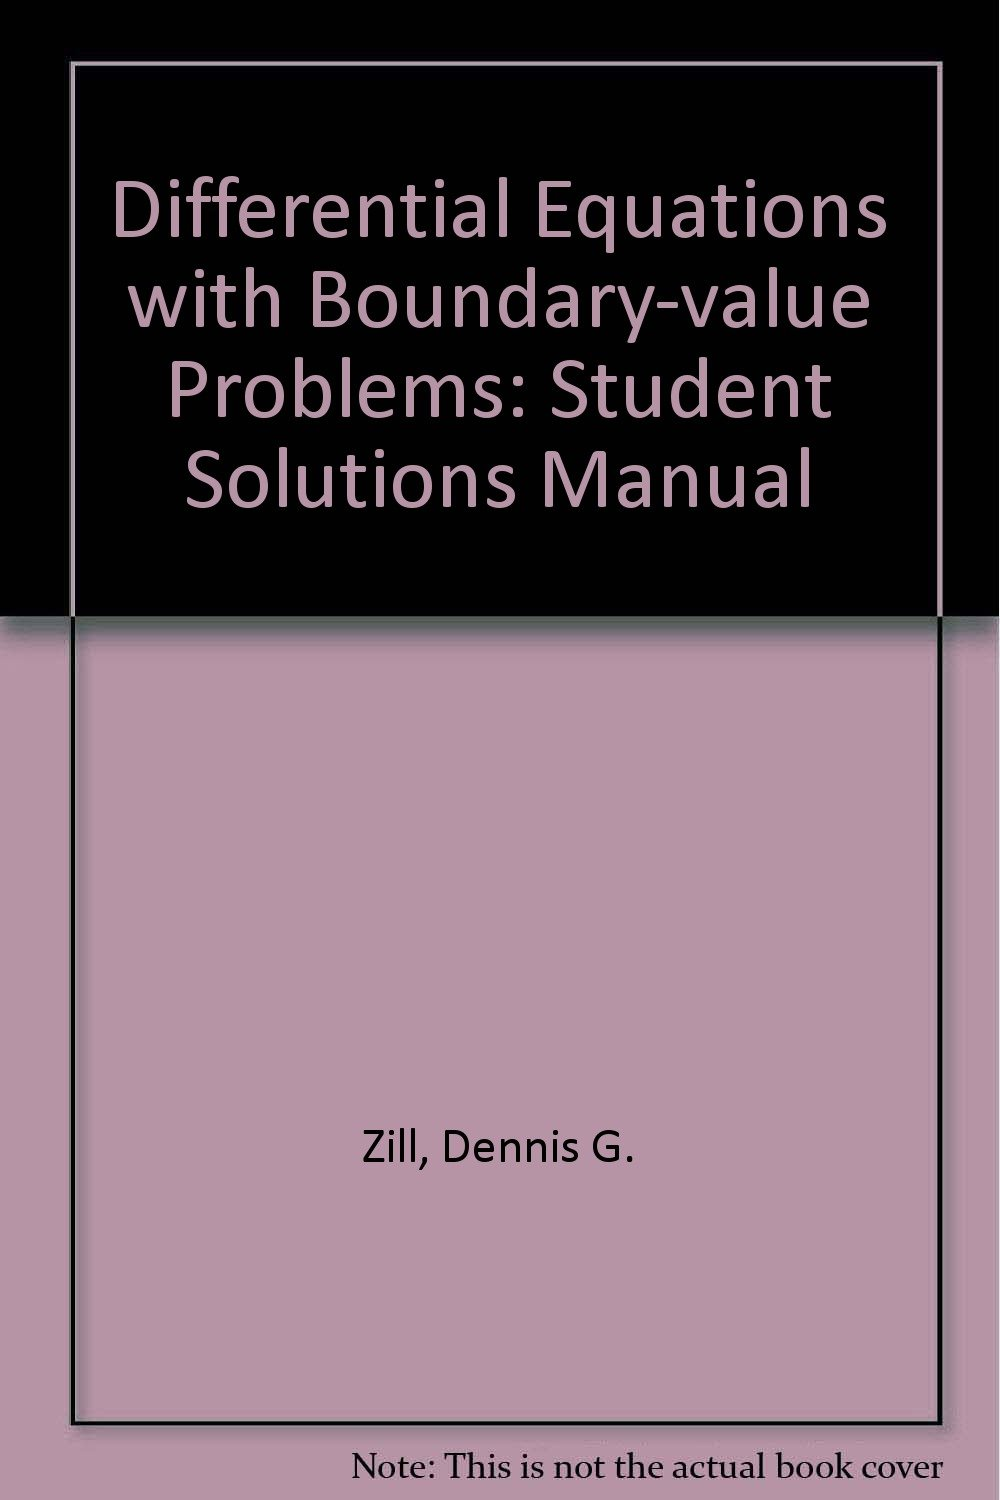 Differential Equations with Boundary-value Problems: Student Solutions  Manual: Dennis G. Zill: 9780534915773: Amazon.com: Books